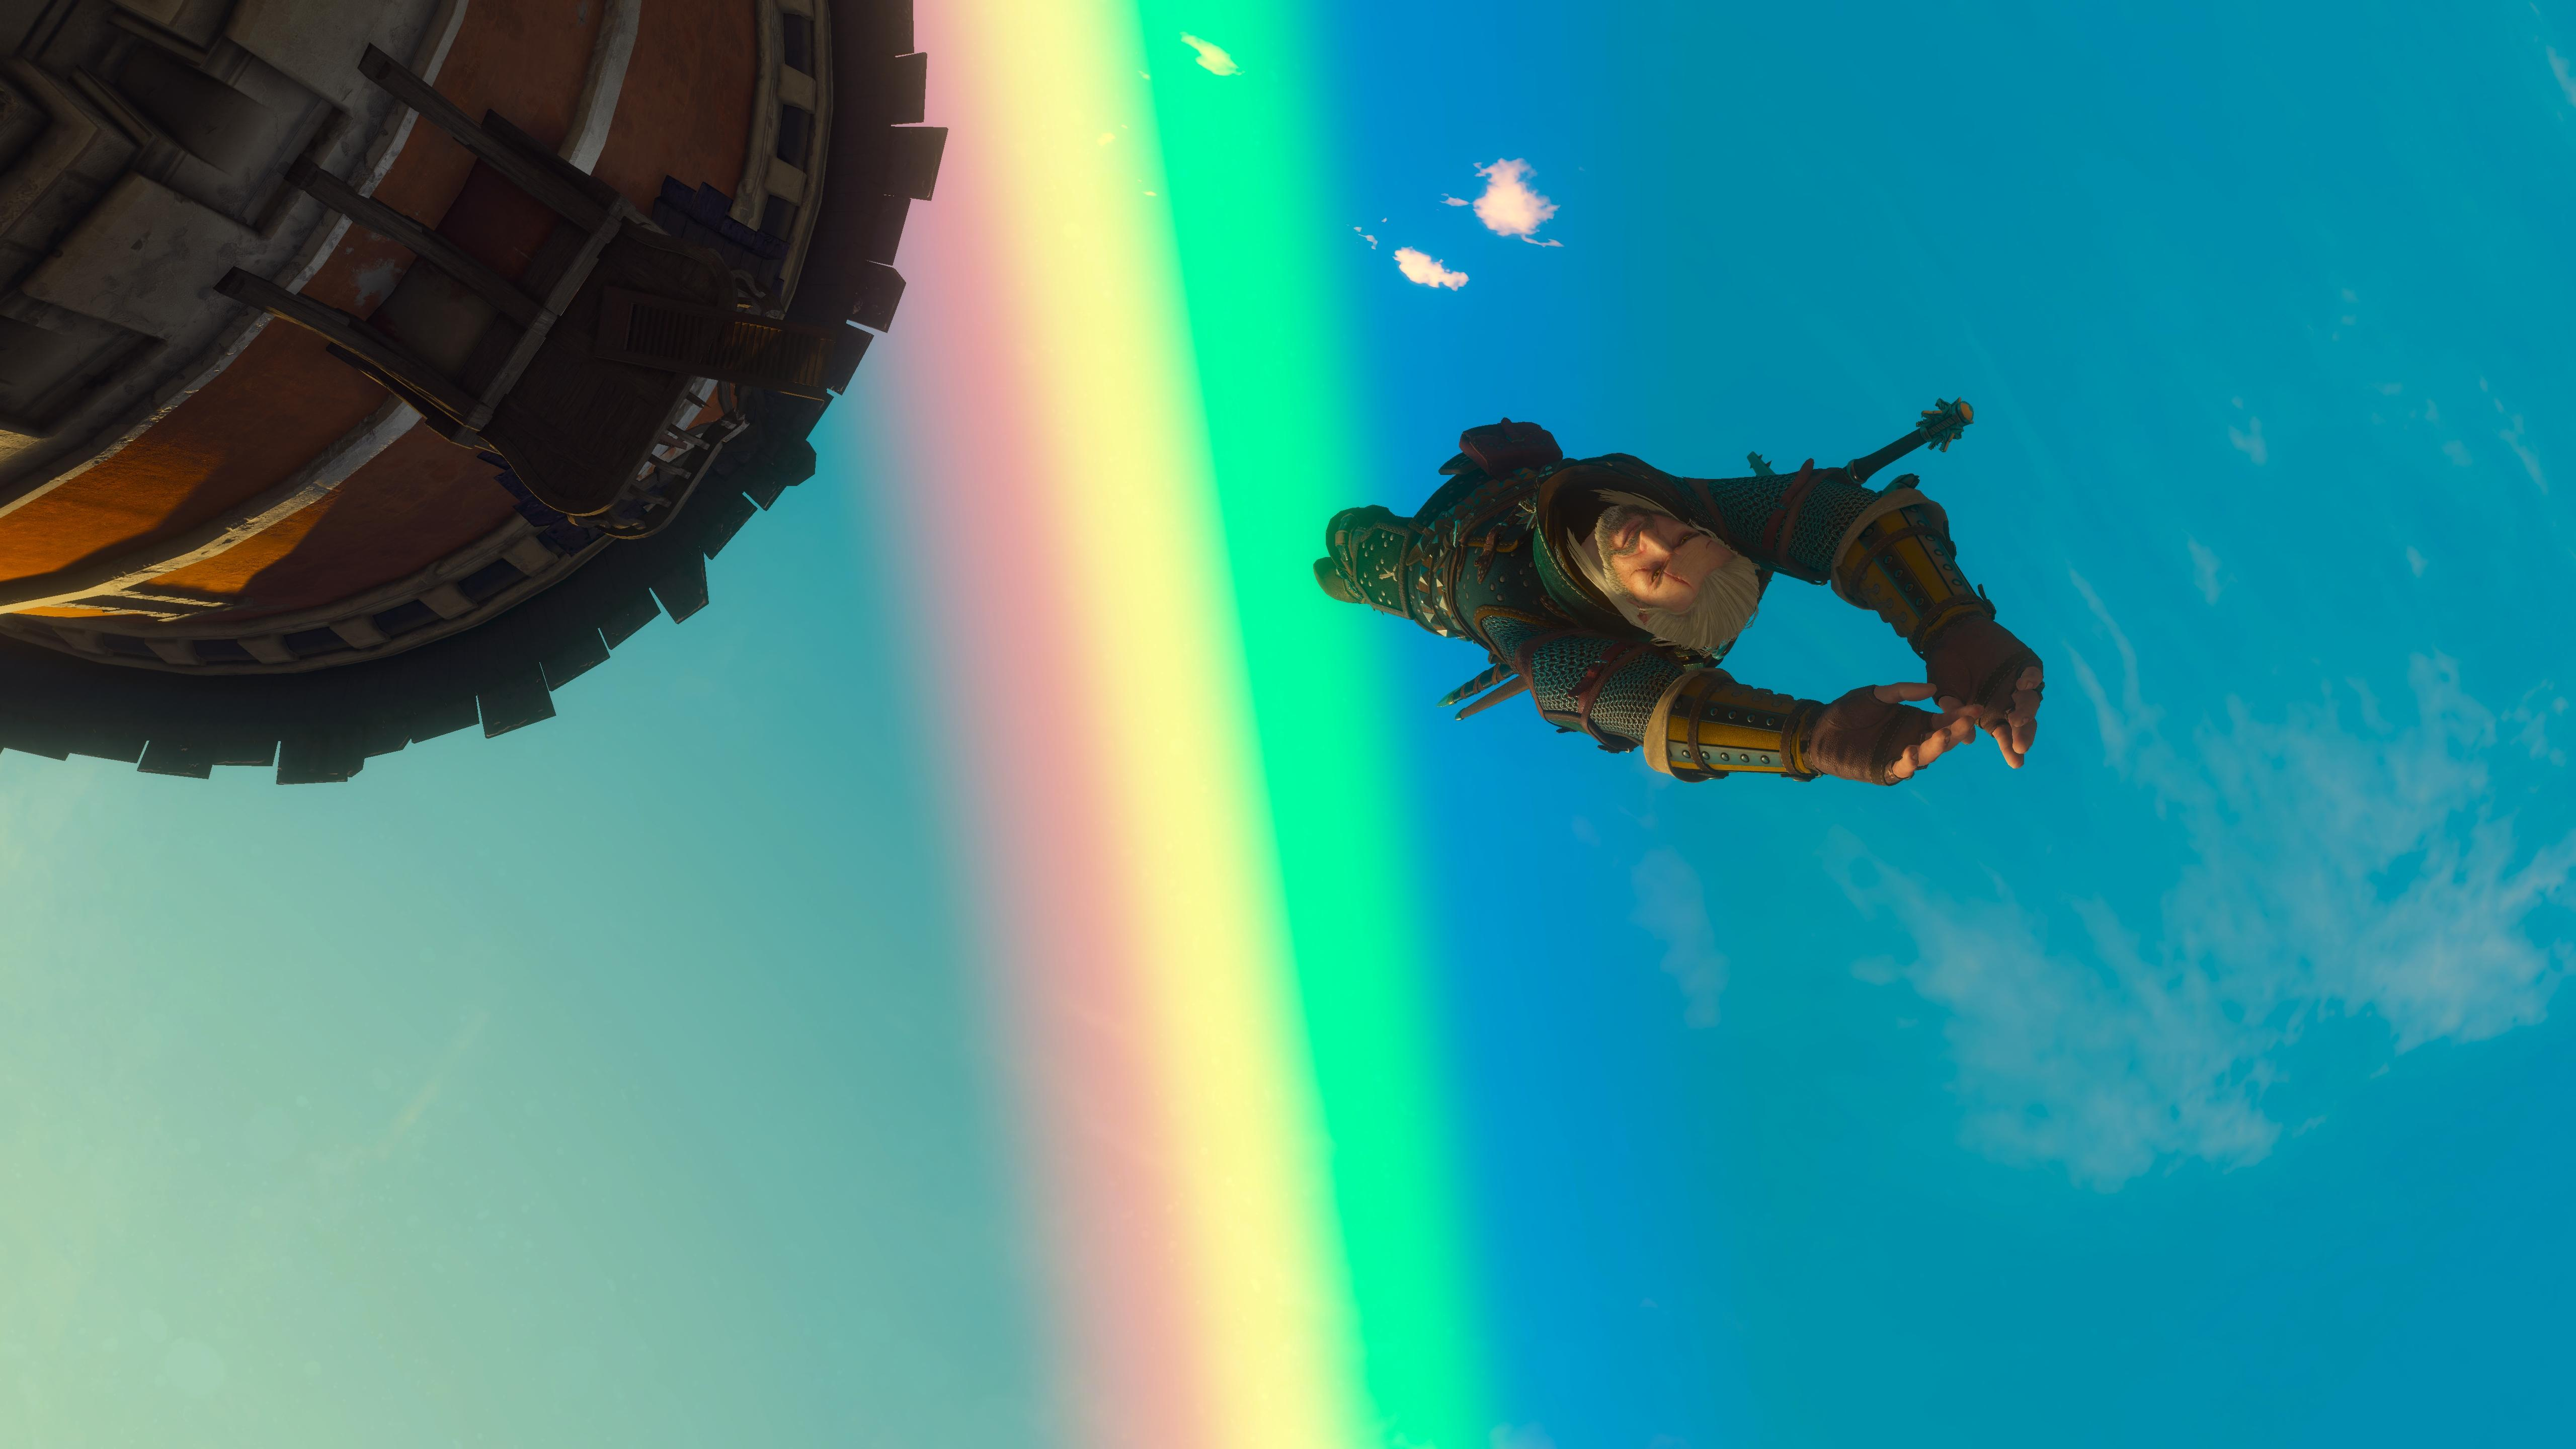 Gary flying over the rainbow : witcher